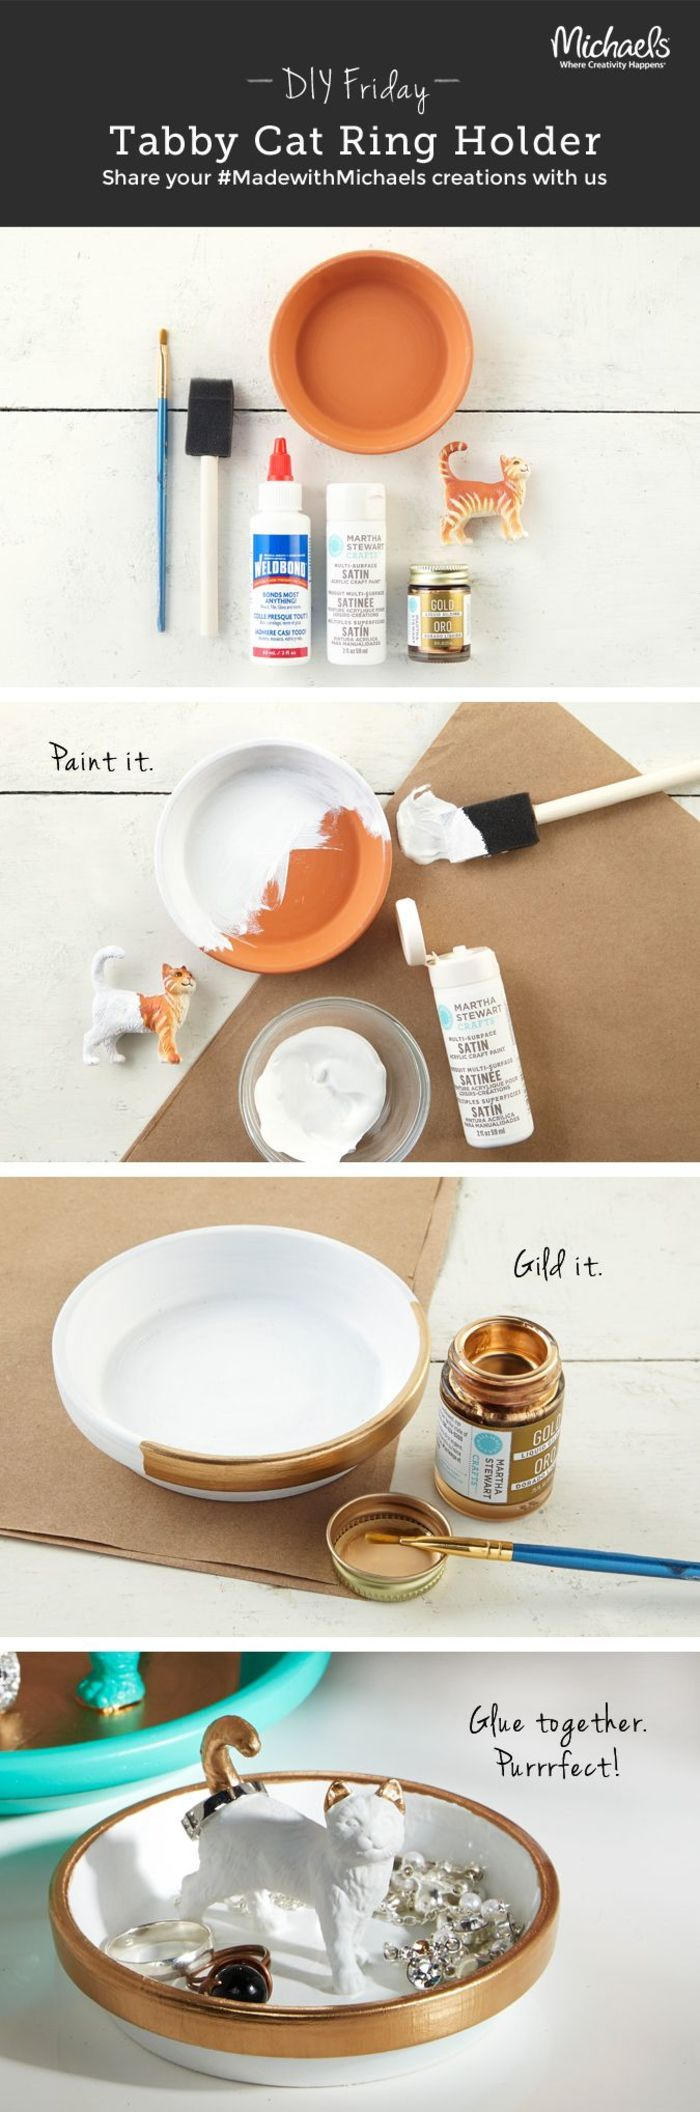 No more clay, purchase, paint, & hot glue gun is all you need for this fabulous Animal Trinket Bowl DIY to display! #DIY #jewelry #jewelrydiy